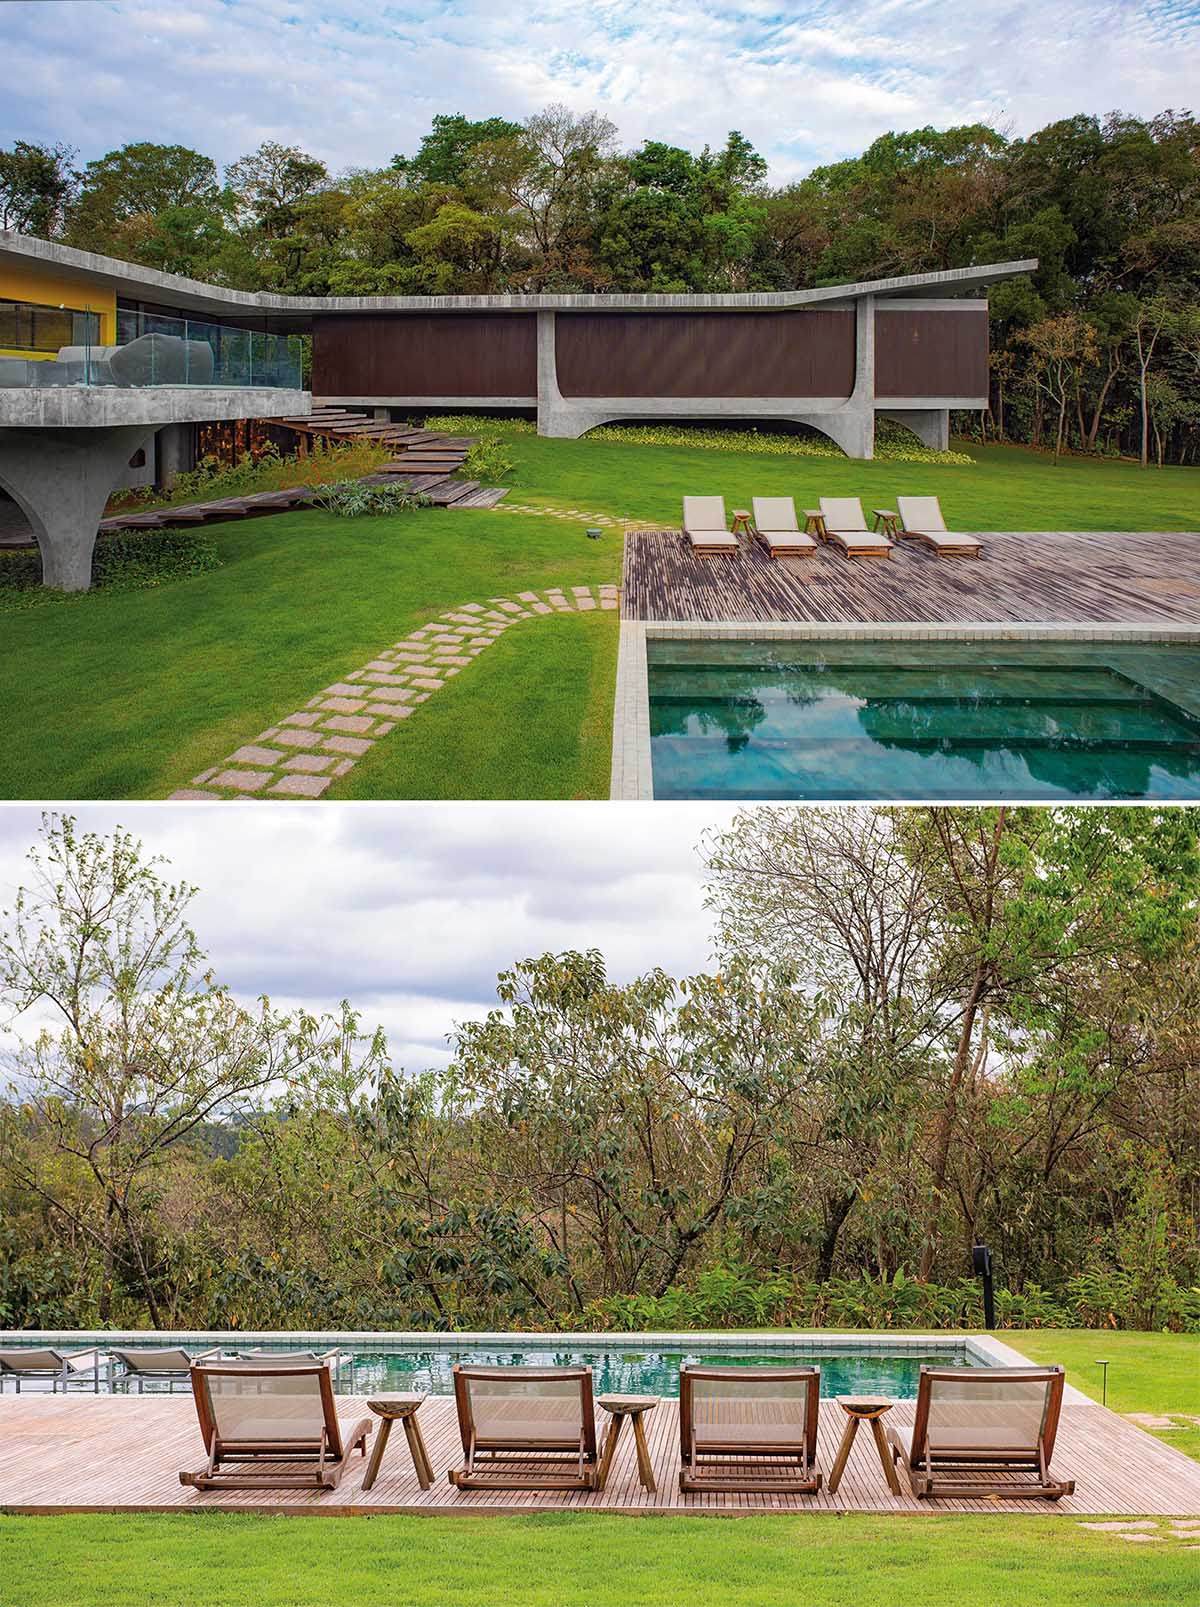 This modern concrete house has wood stairs that lead down to a swimming pool and deck.